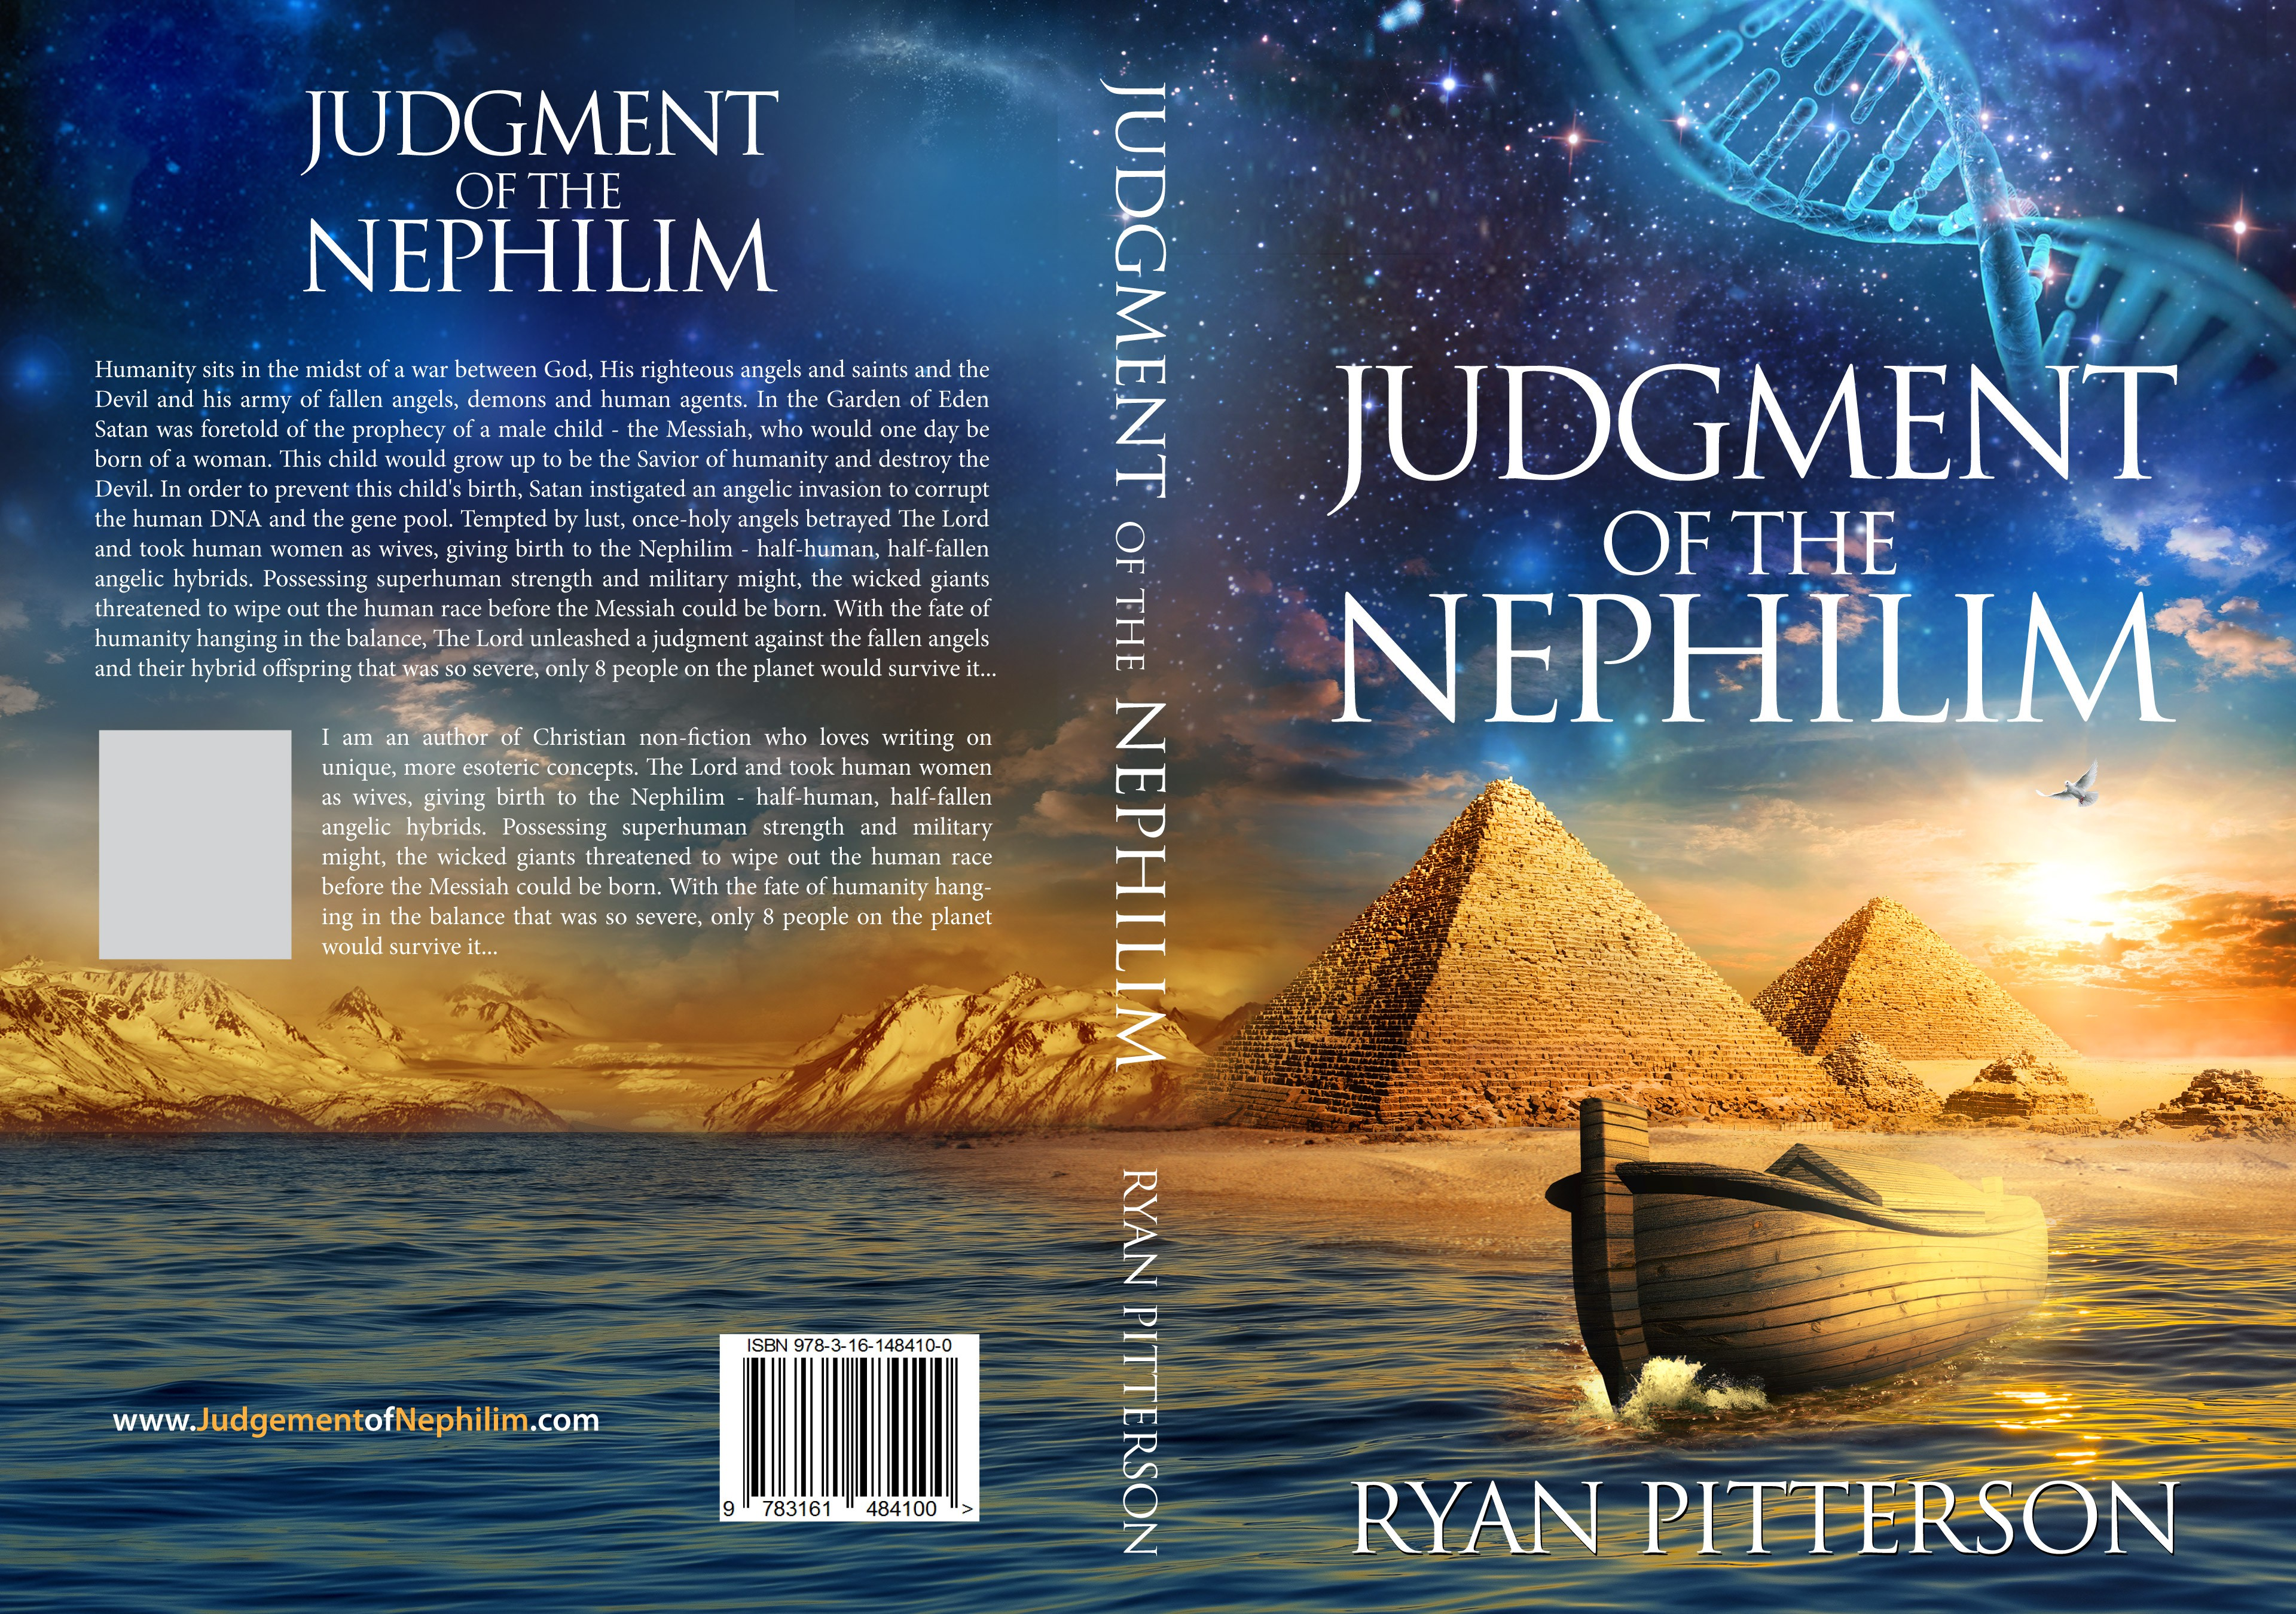 Create an exciting, eye-catching cover for the book: Judgment of the Nephilim